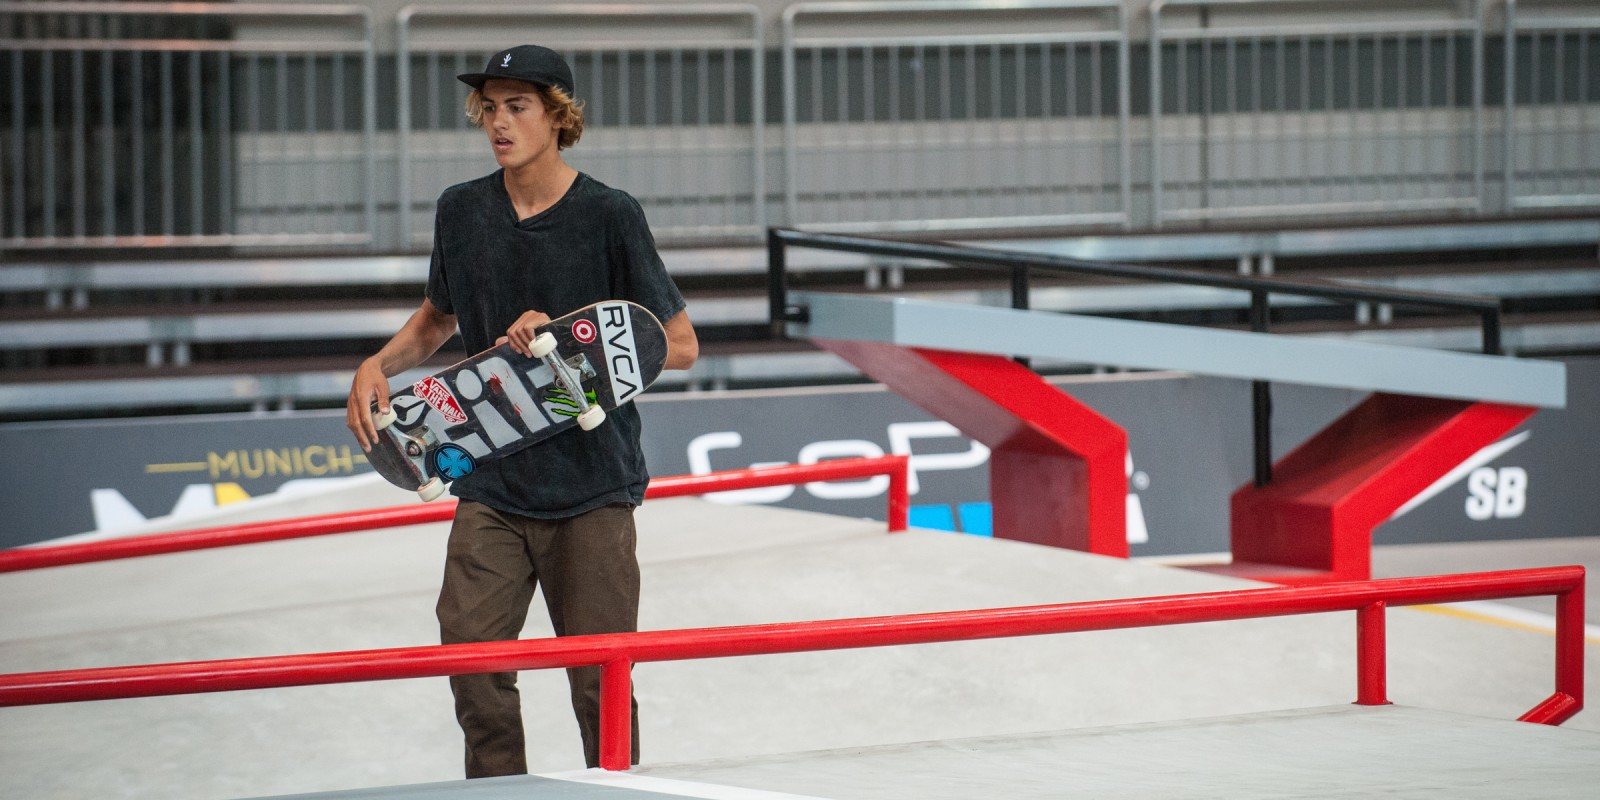 Curren Caples during practice for the SLS 2016 season in Munich, Germany